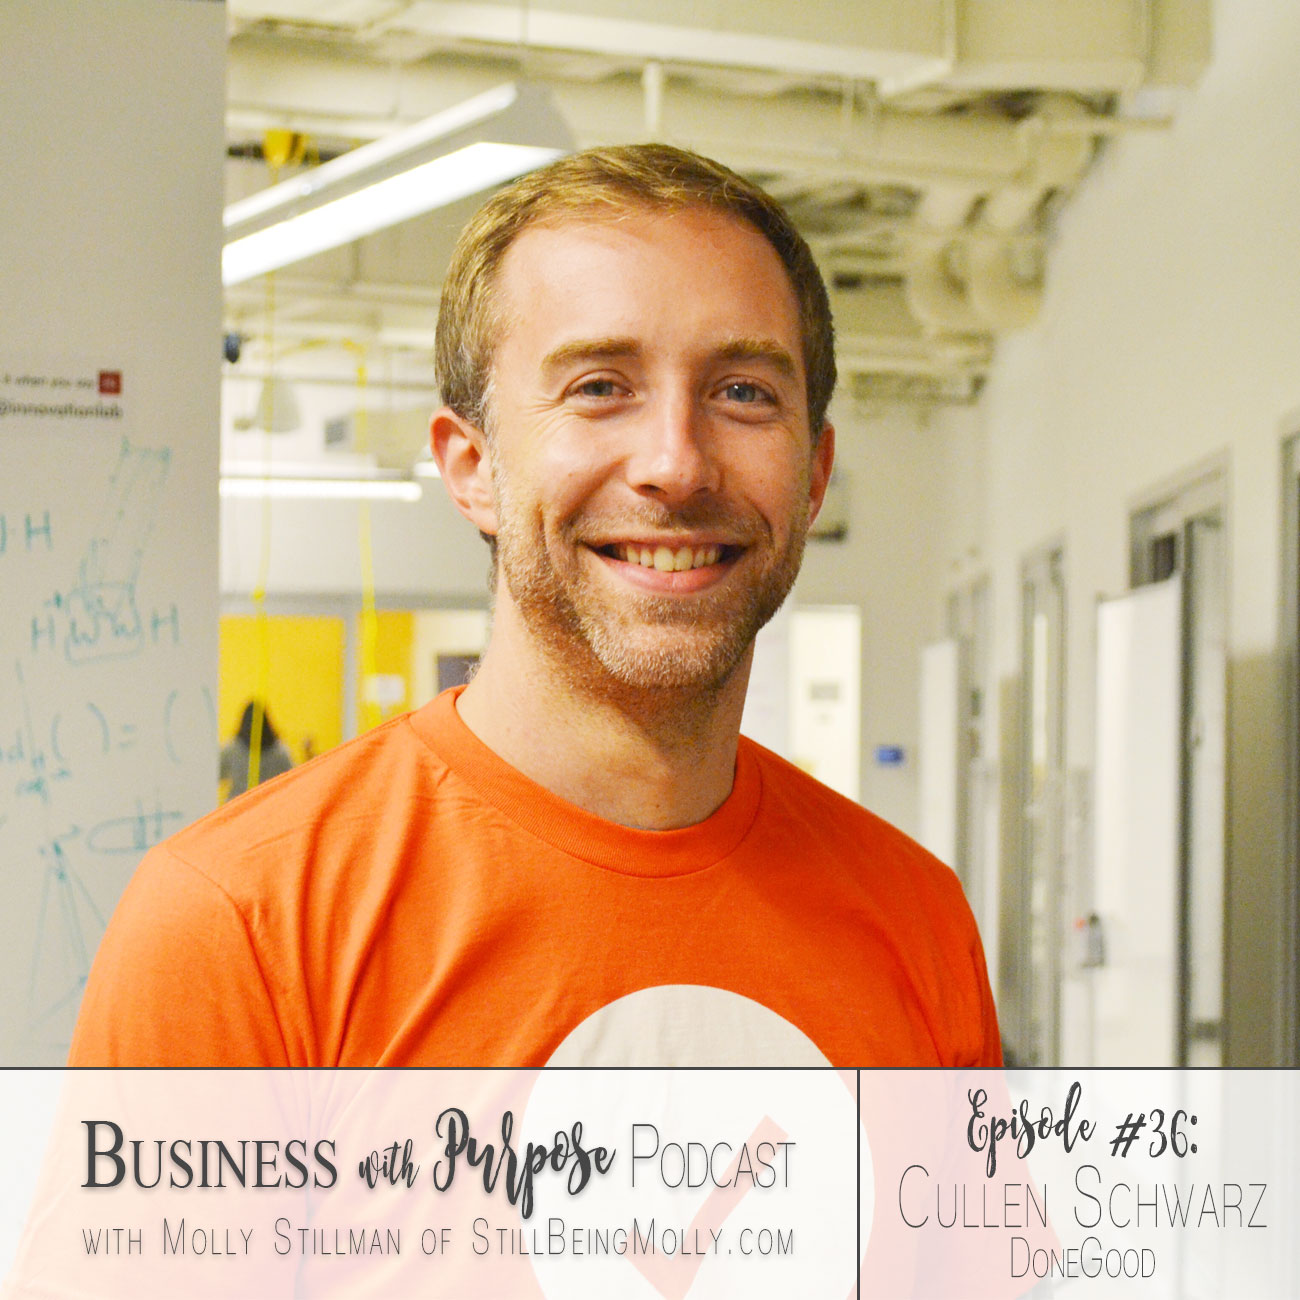 EP 36: Cullen Schwarz, co-founder of DoneGood